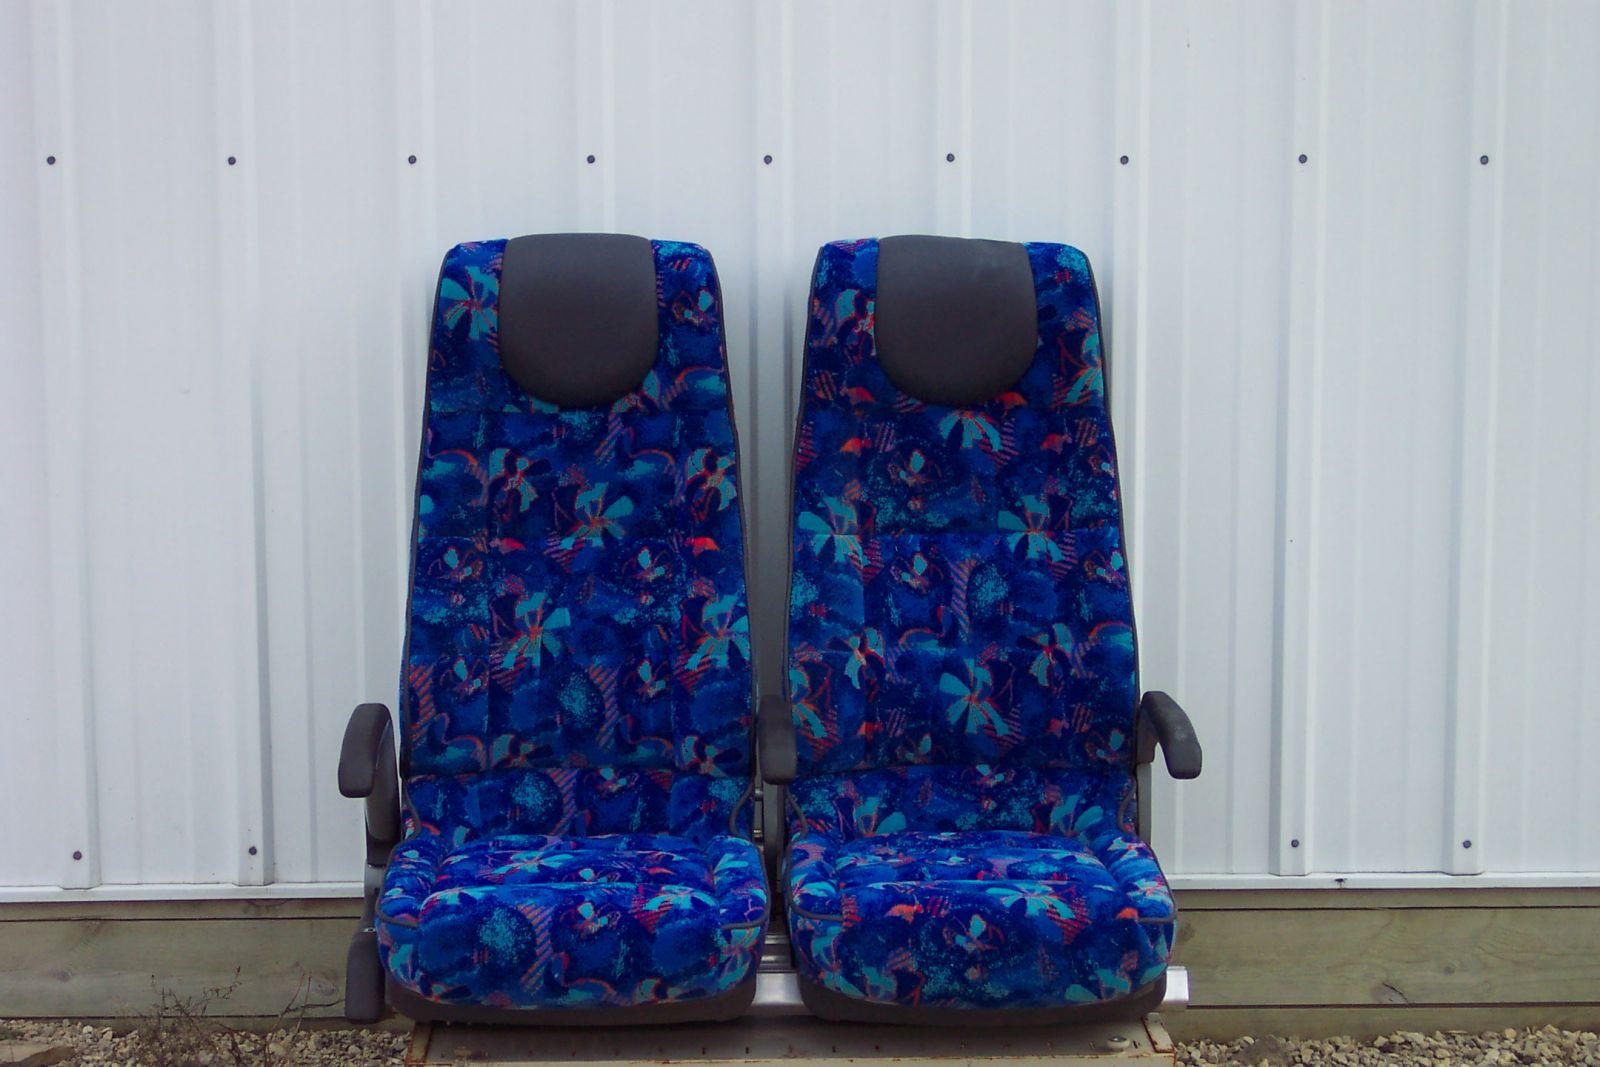 Bus seats for sale, Rochester MN